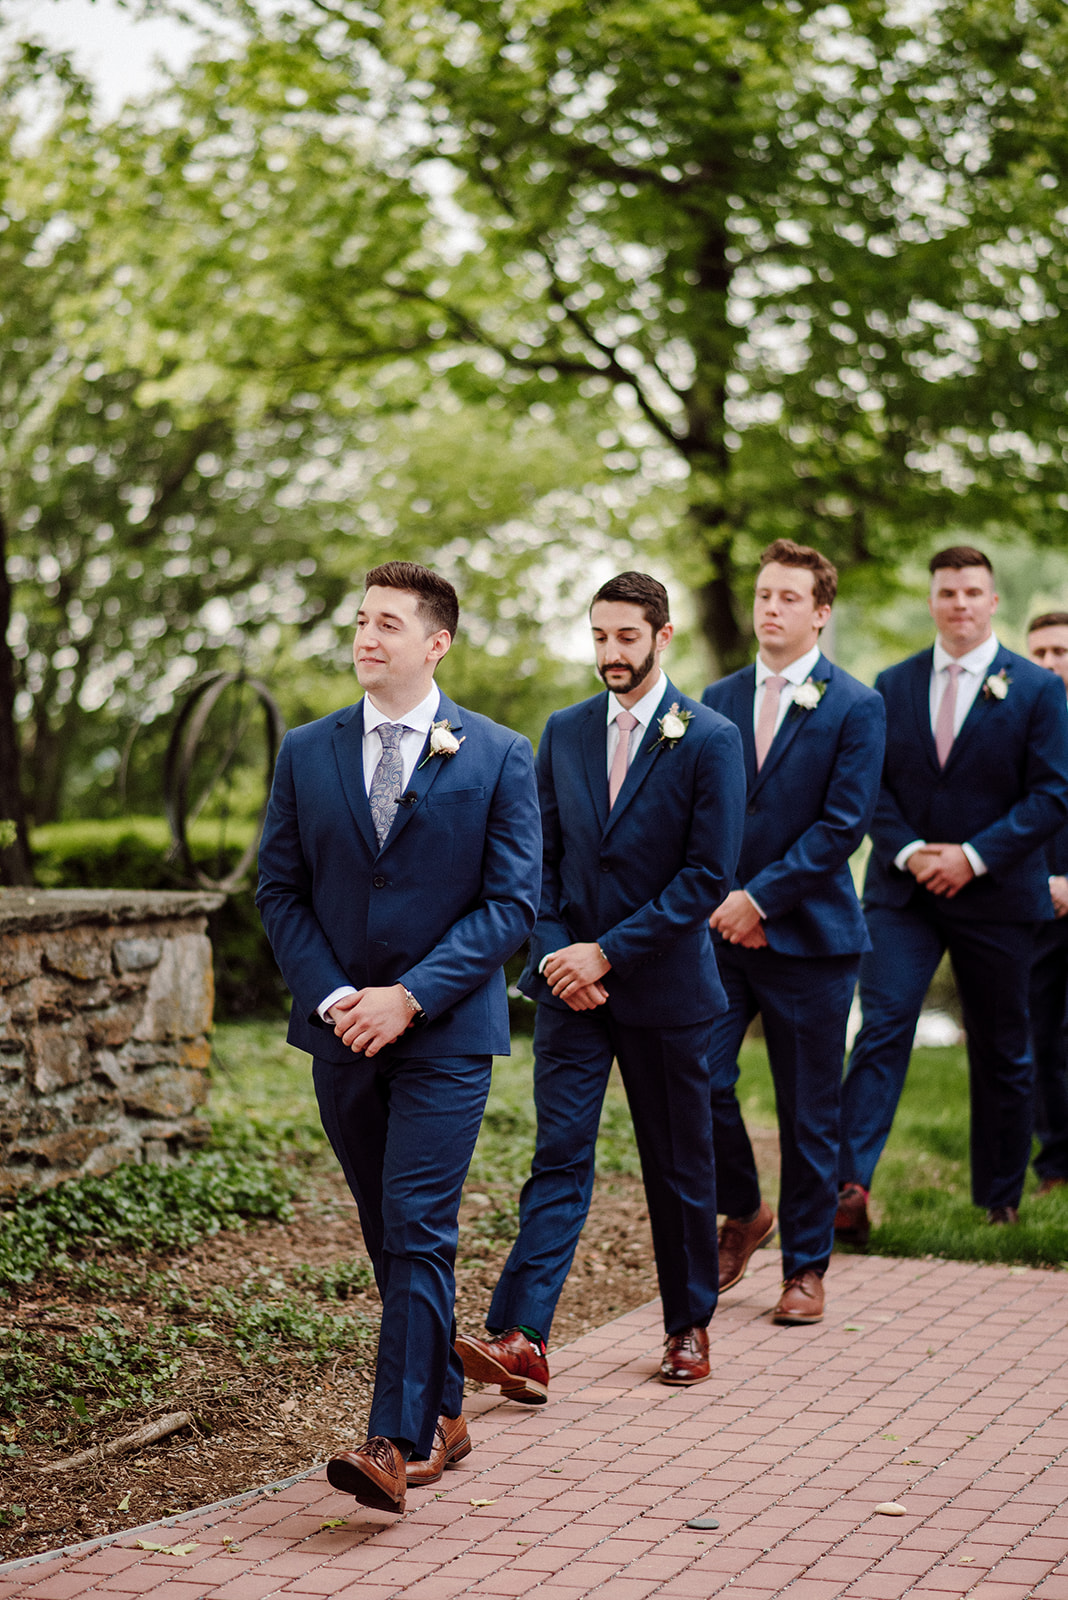 The groom and his groomsmen enter the wedding ceremony at Drumore Estate.